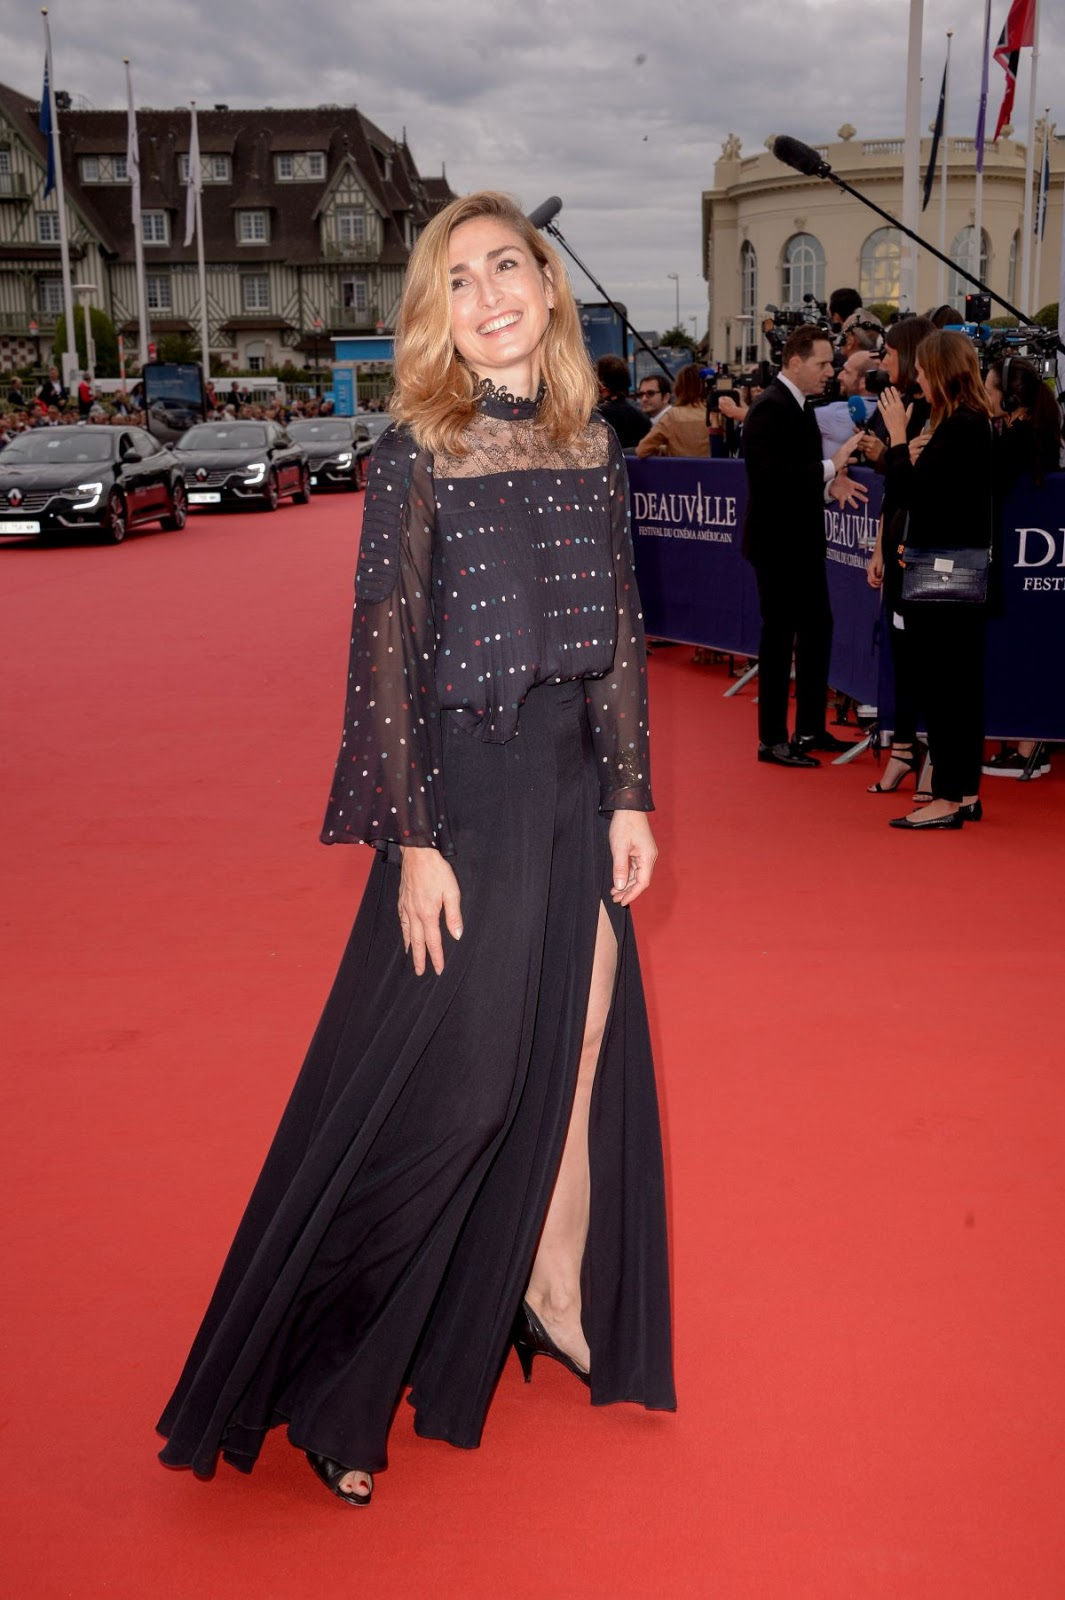 HQ Photos of 'We Are Family' actress Julie Gayet At The Infiltrator Premiere At 2016 Deauville American Film Festival